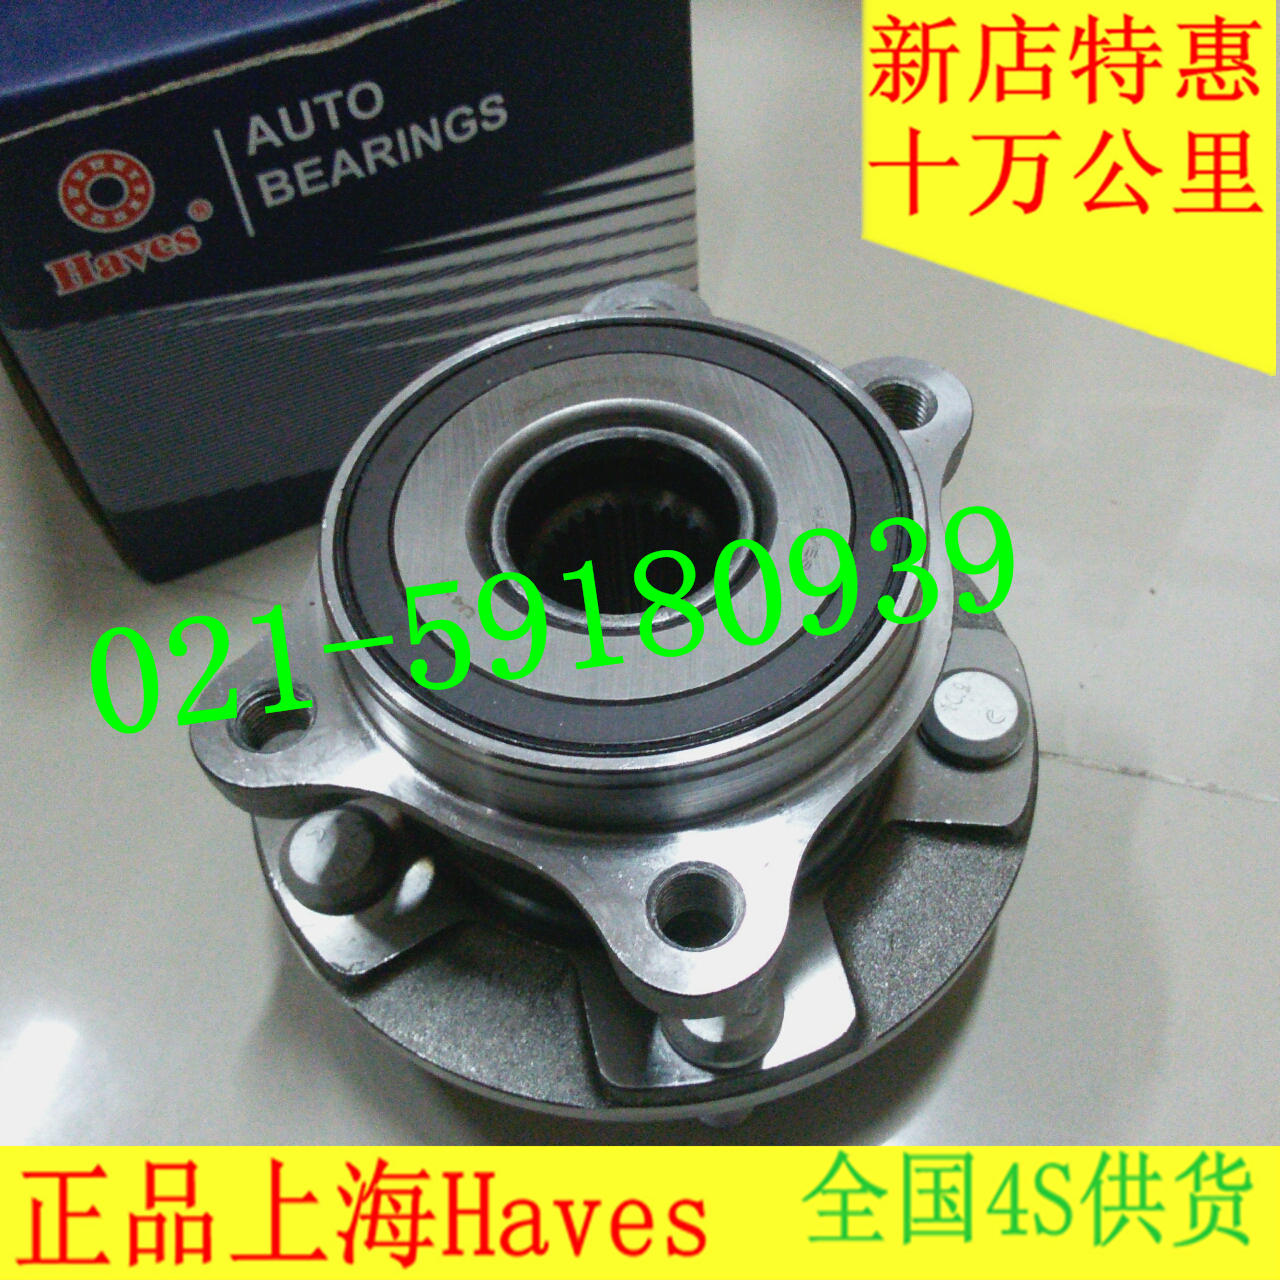 Authentic shanghai haves toyota priusçå¡ç½ææ®reiz/3/prius rear wheel bearing front wheel bearings